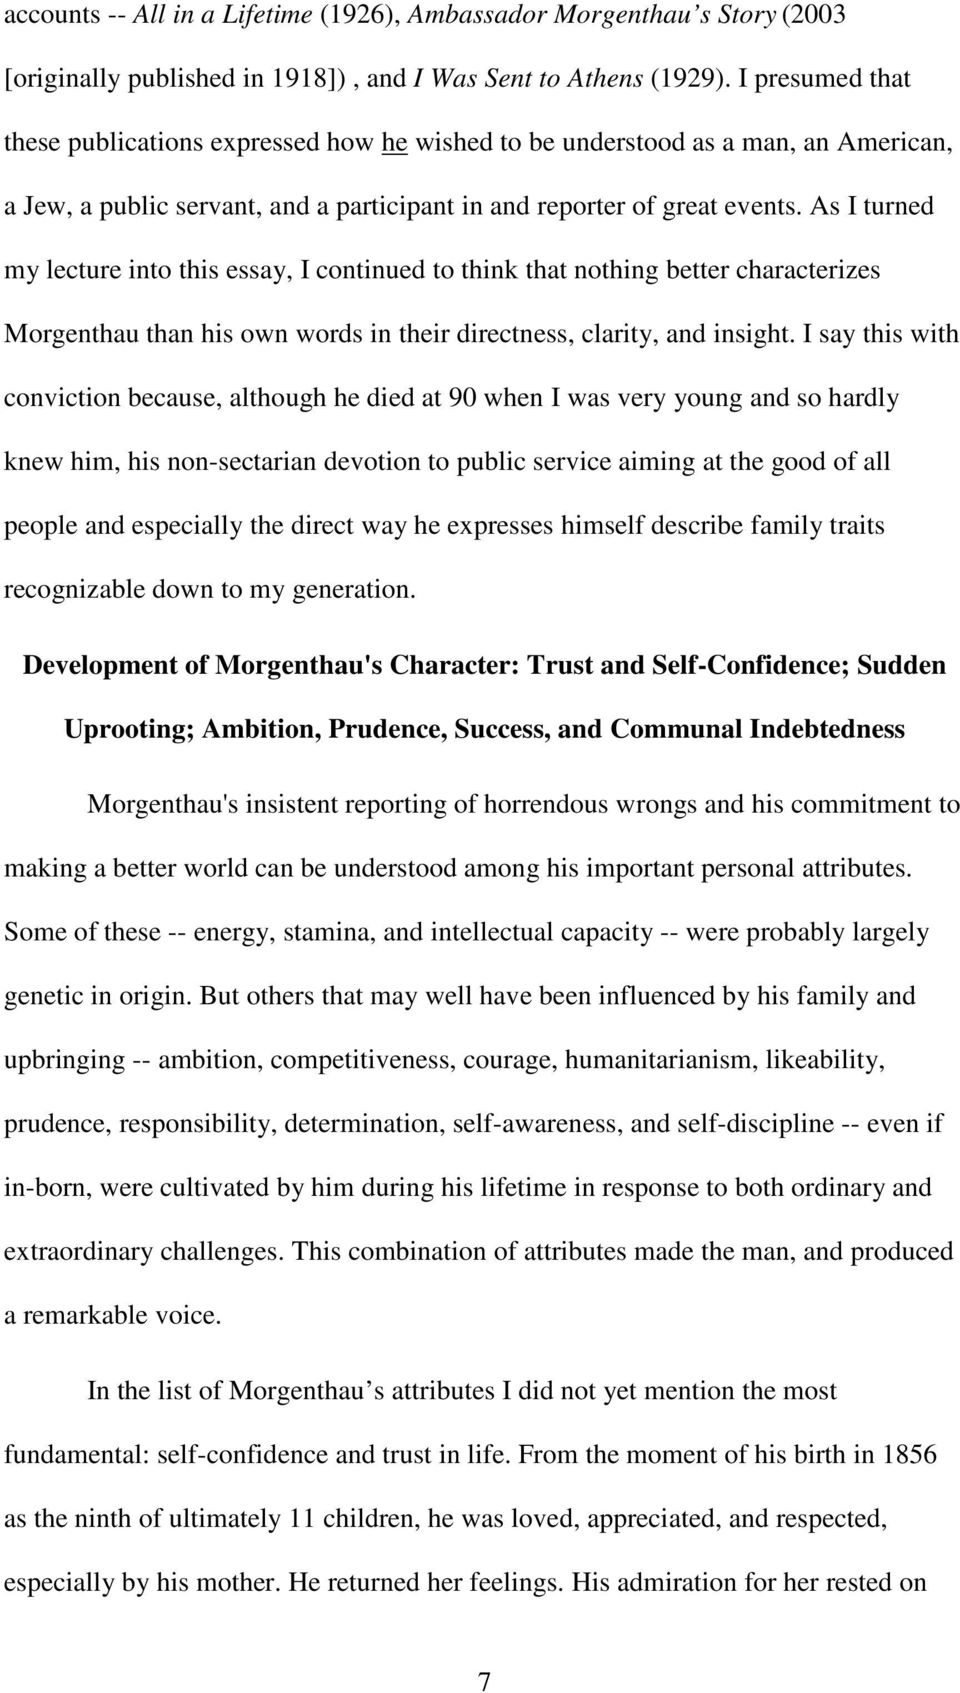 As I turned my lecture into this essay, I continued to think that nothing better characterizes Morgenthau than his own words in their directness, clarity, and insight.